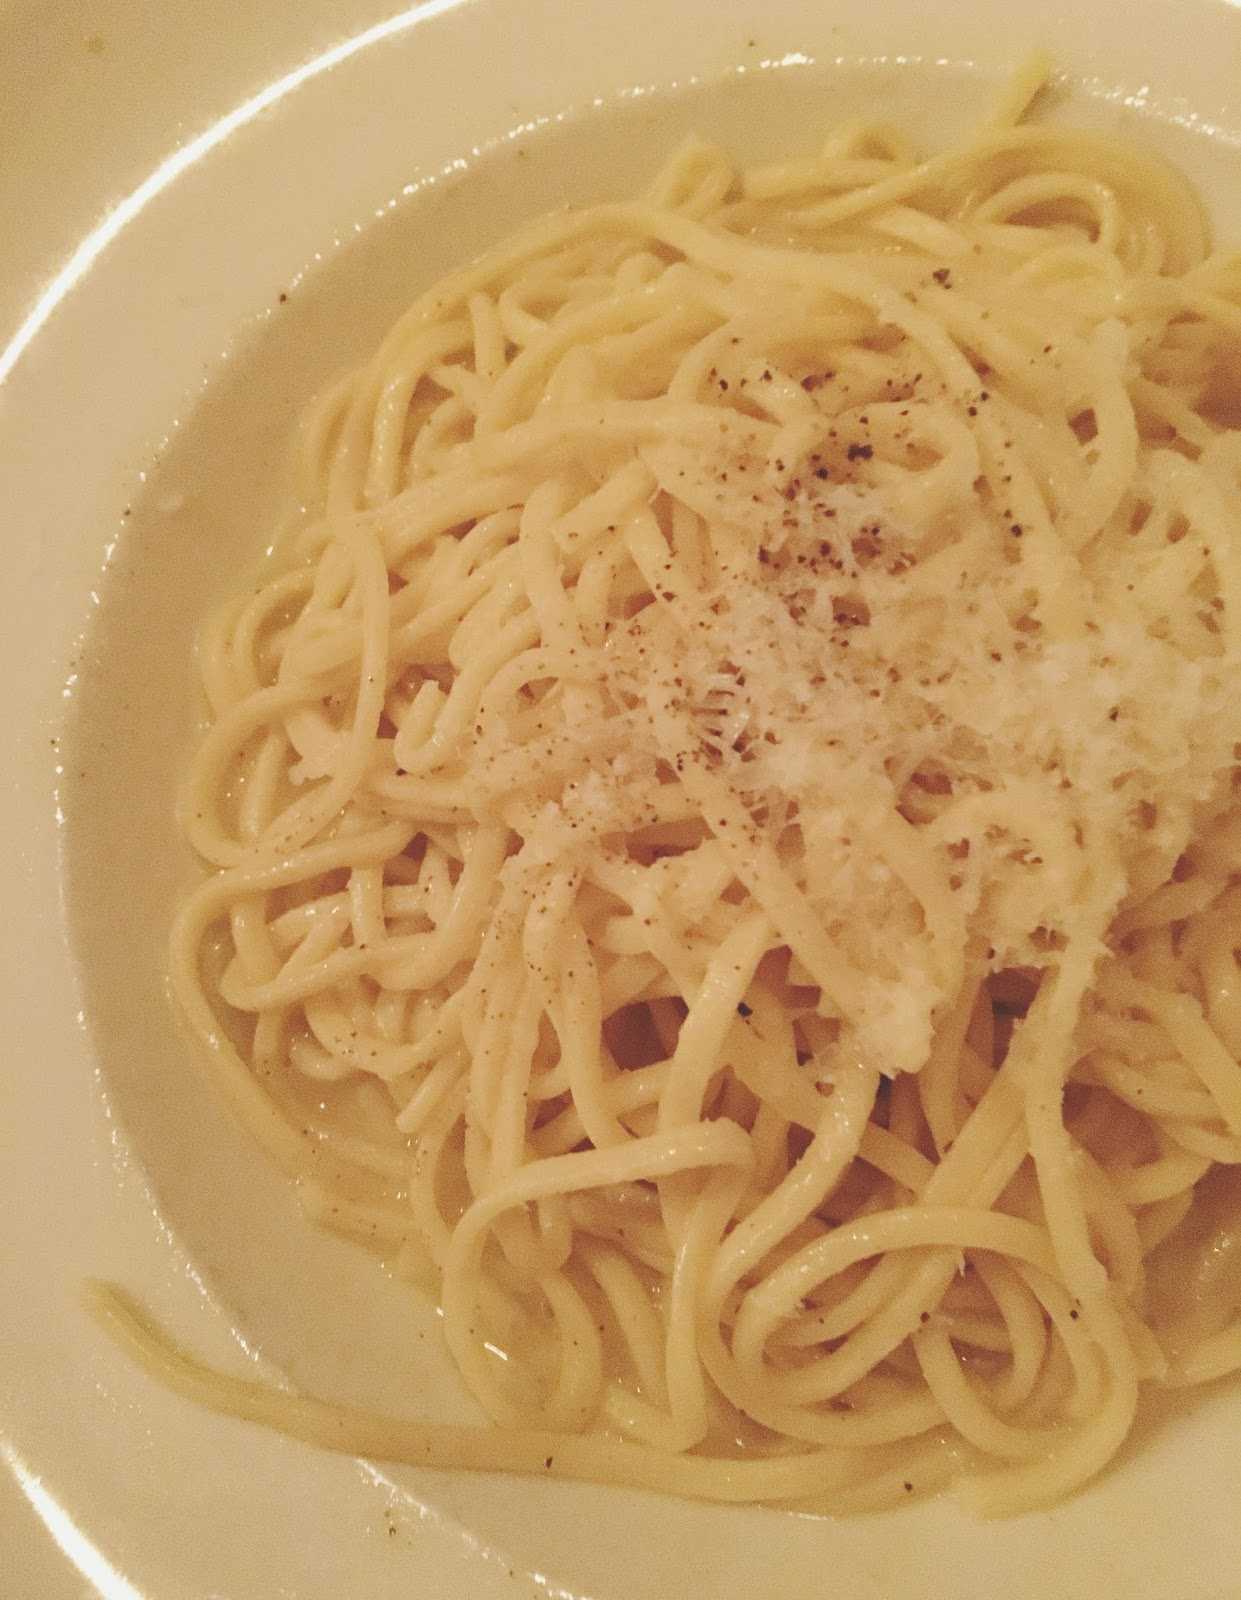 cacio e pepe at Treva - a restaurant in West Hartford, Connecticut